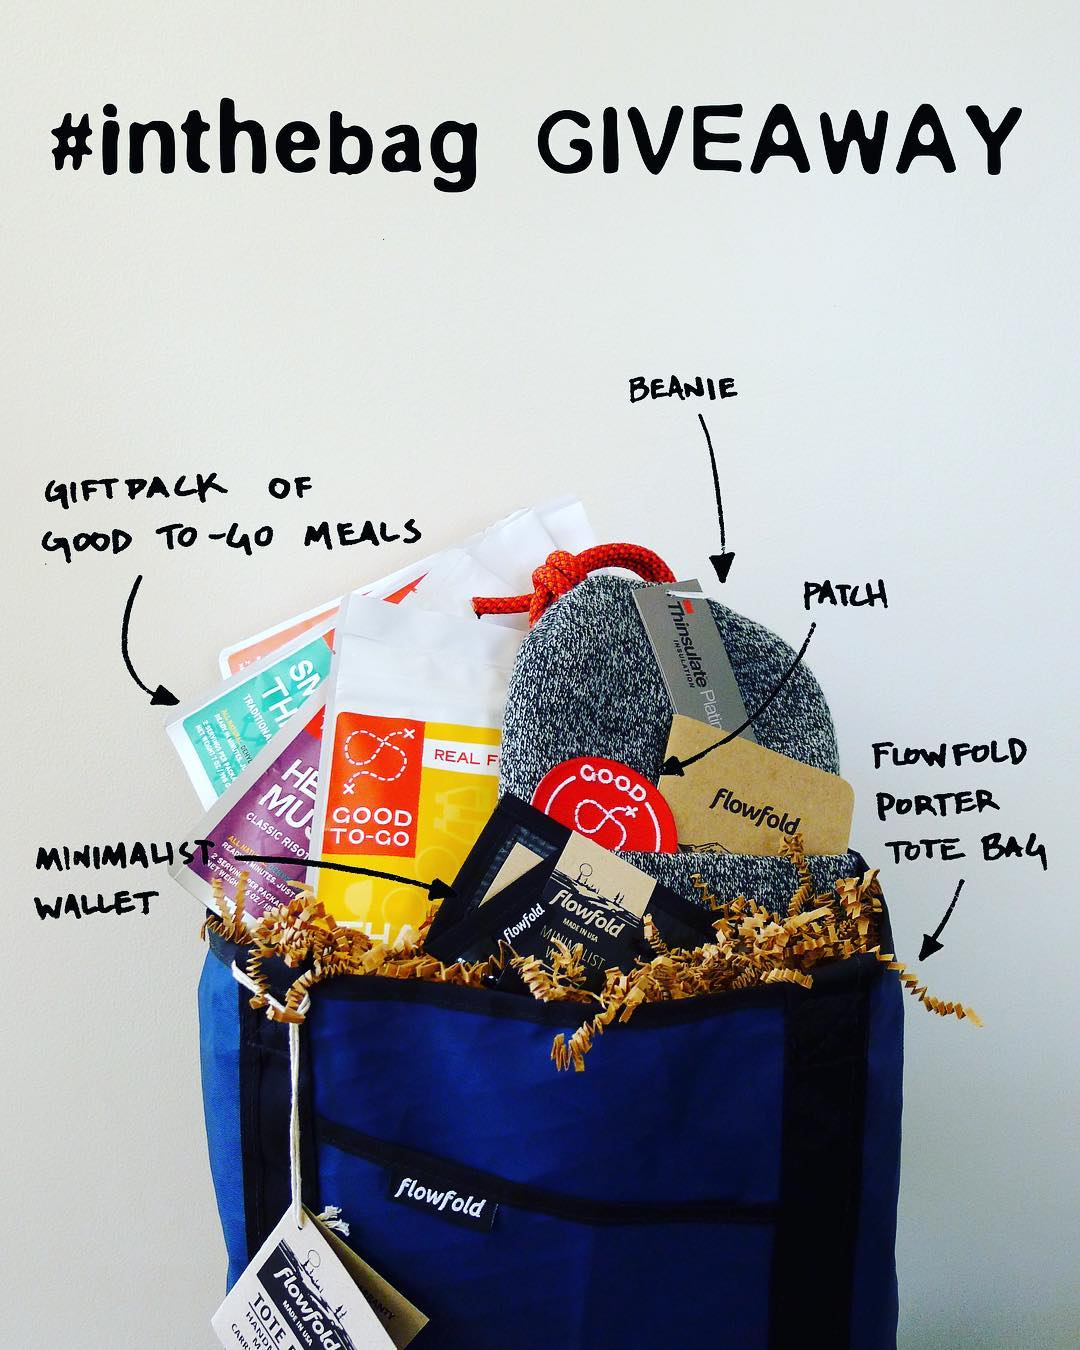 @flowfold and @goodtogofoods Giveaway!  Enter to win the #inthebag giveaway featuring Good To-Go gourmet dehydrated meals, a #Flowfold Porter tote and more! Giveaway launched Feb 24th and entries are accepted through Feb 28th  To enter:  1. tag one...